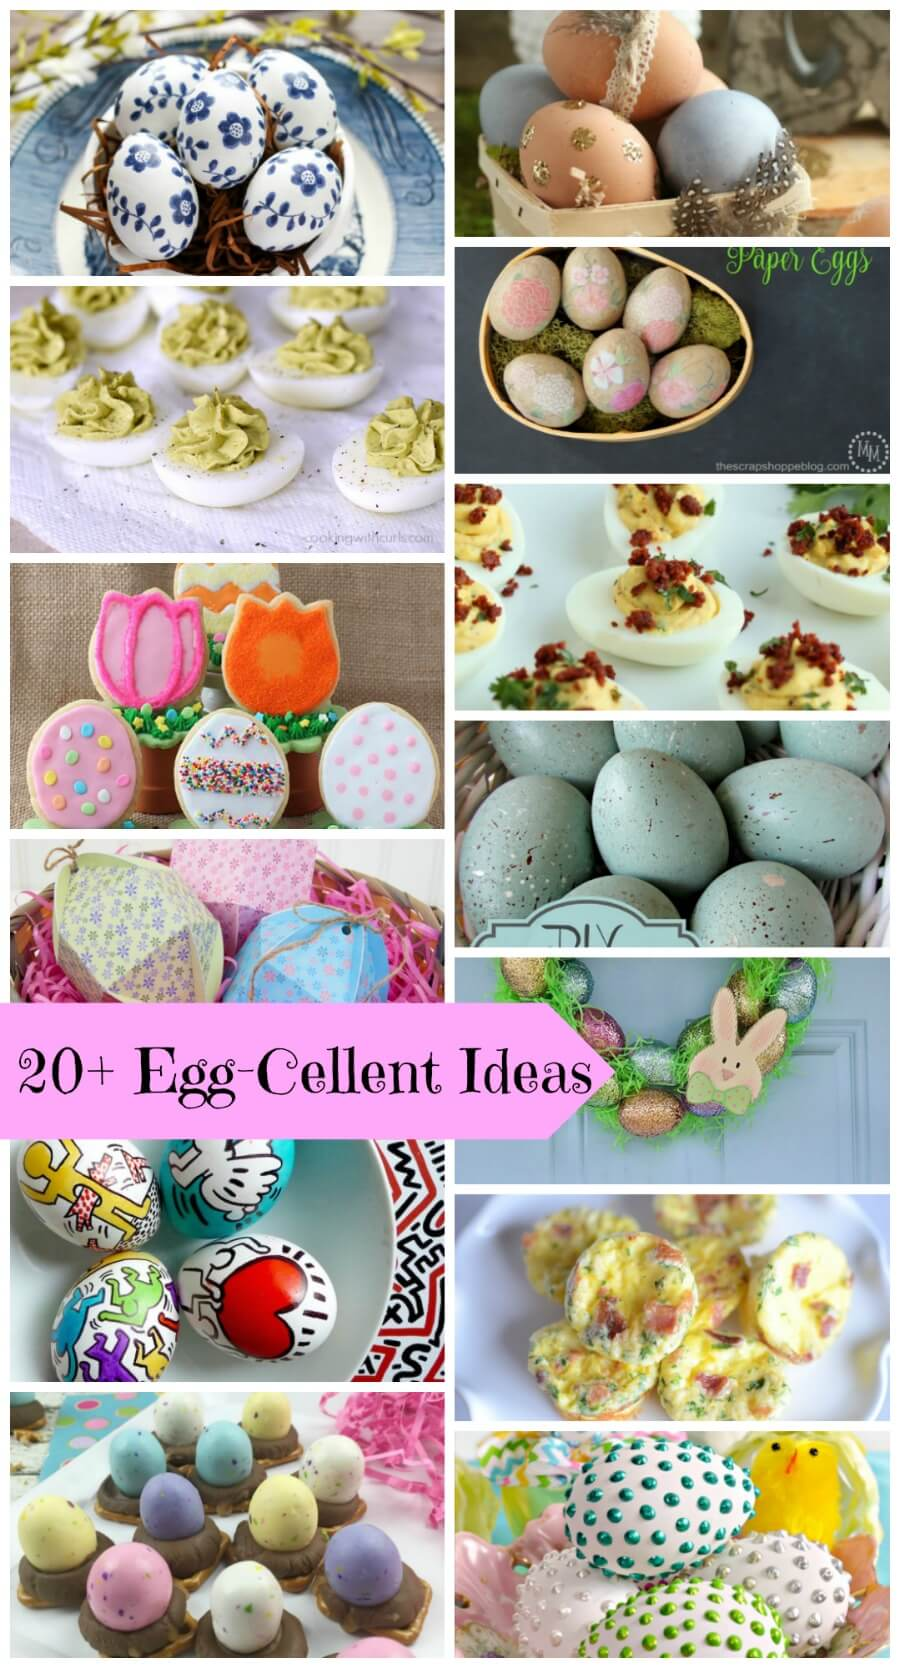 Egg-cellent Projects and Recipes